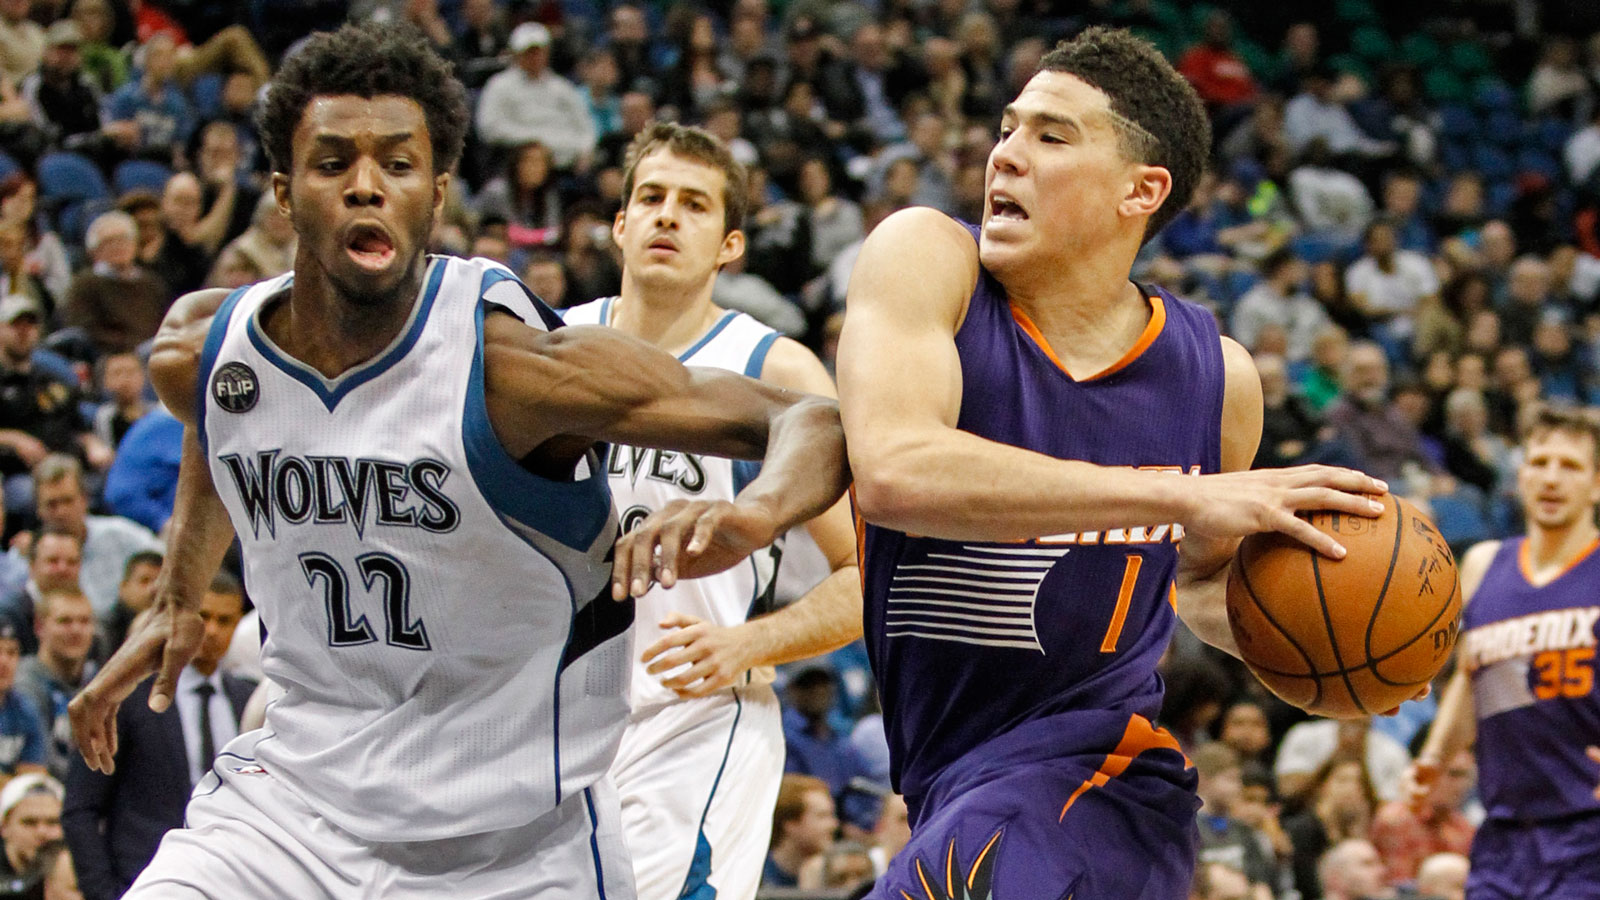 Suns look to build off 'best game' as T-wolves visit